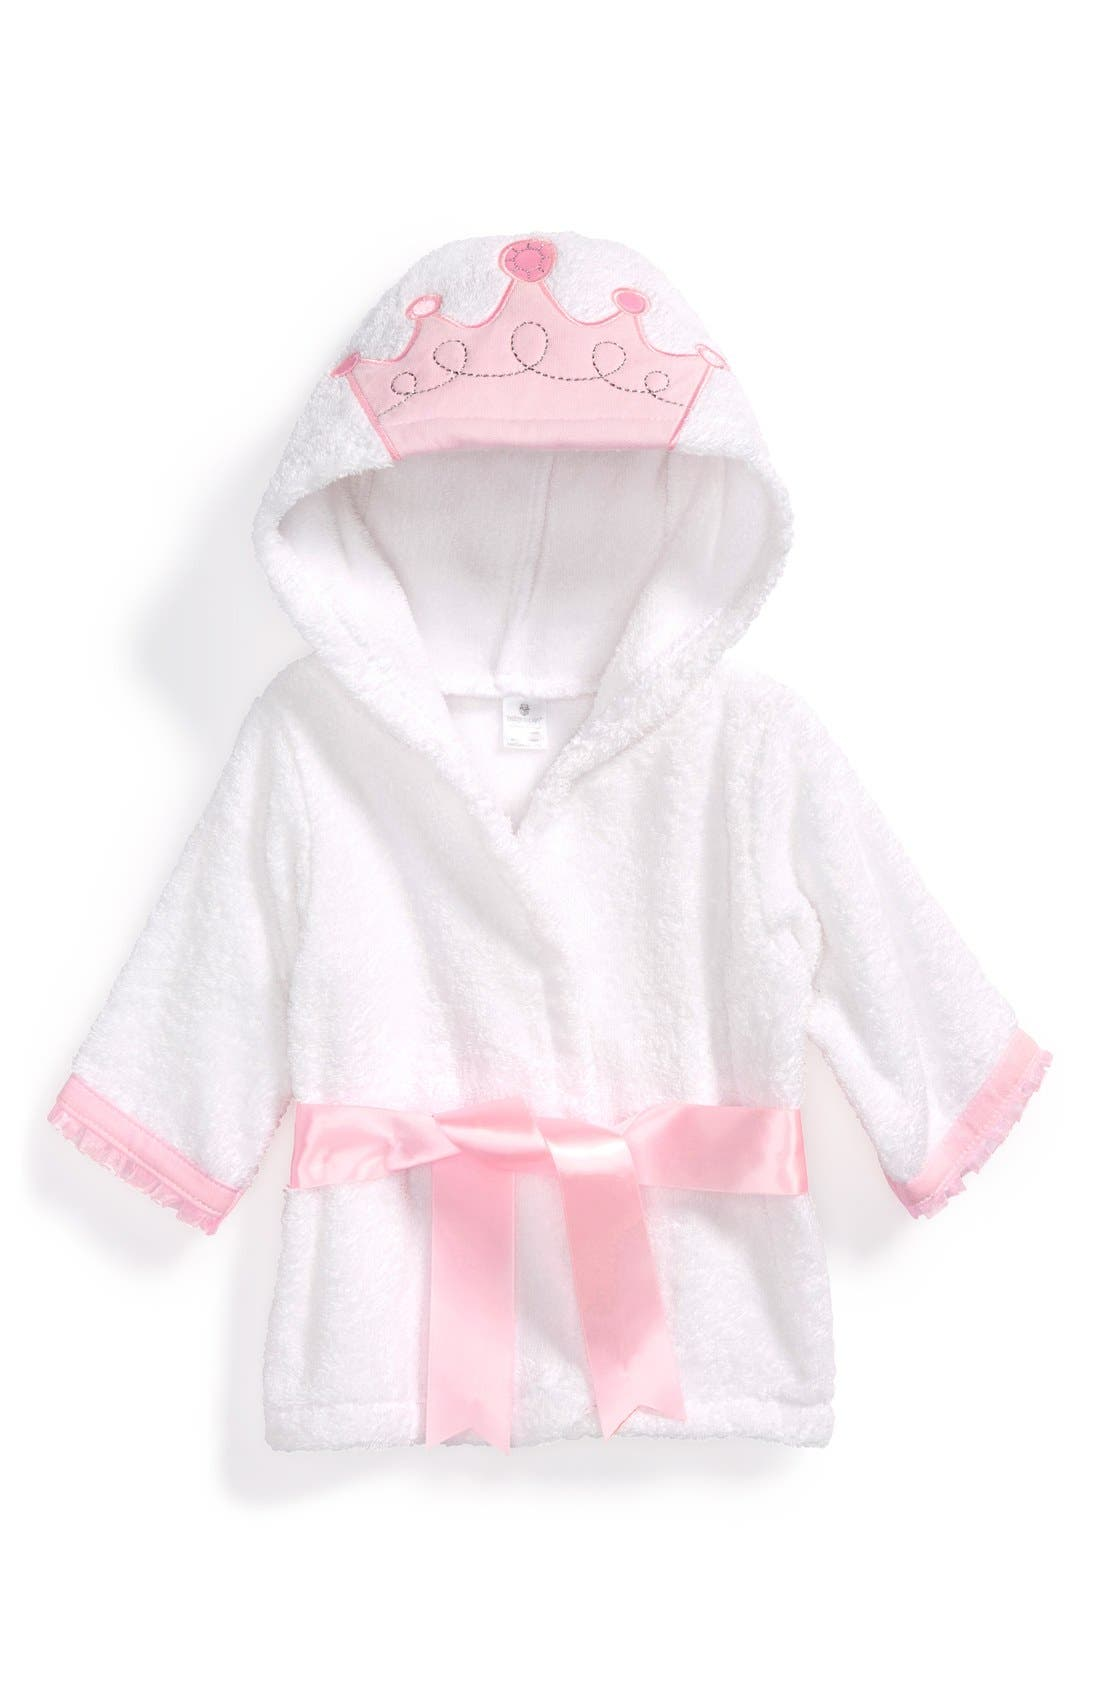 Little Princess Hooded Terry Robe,                             Main thumbnail 1, color,                             650